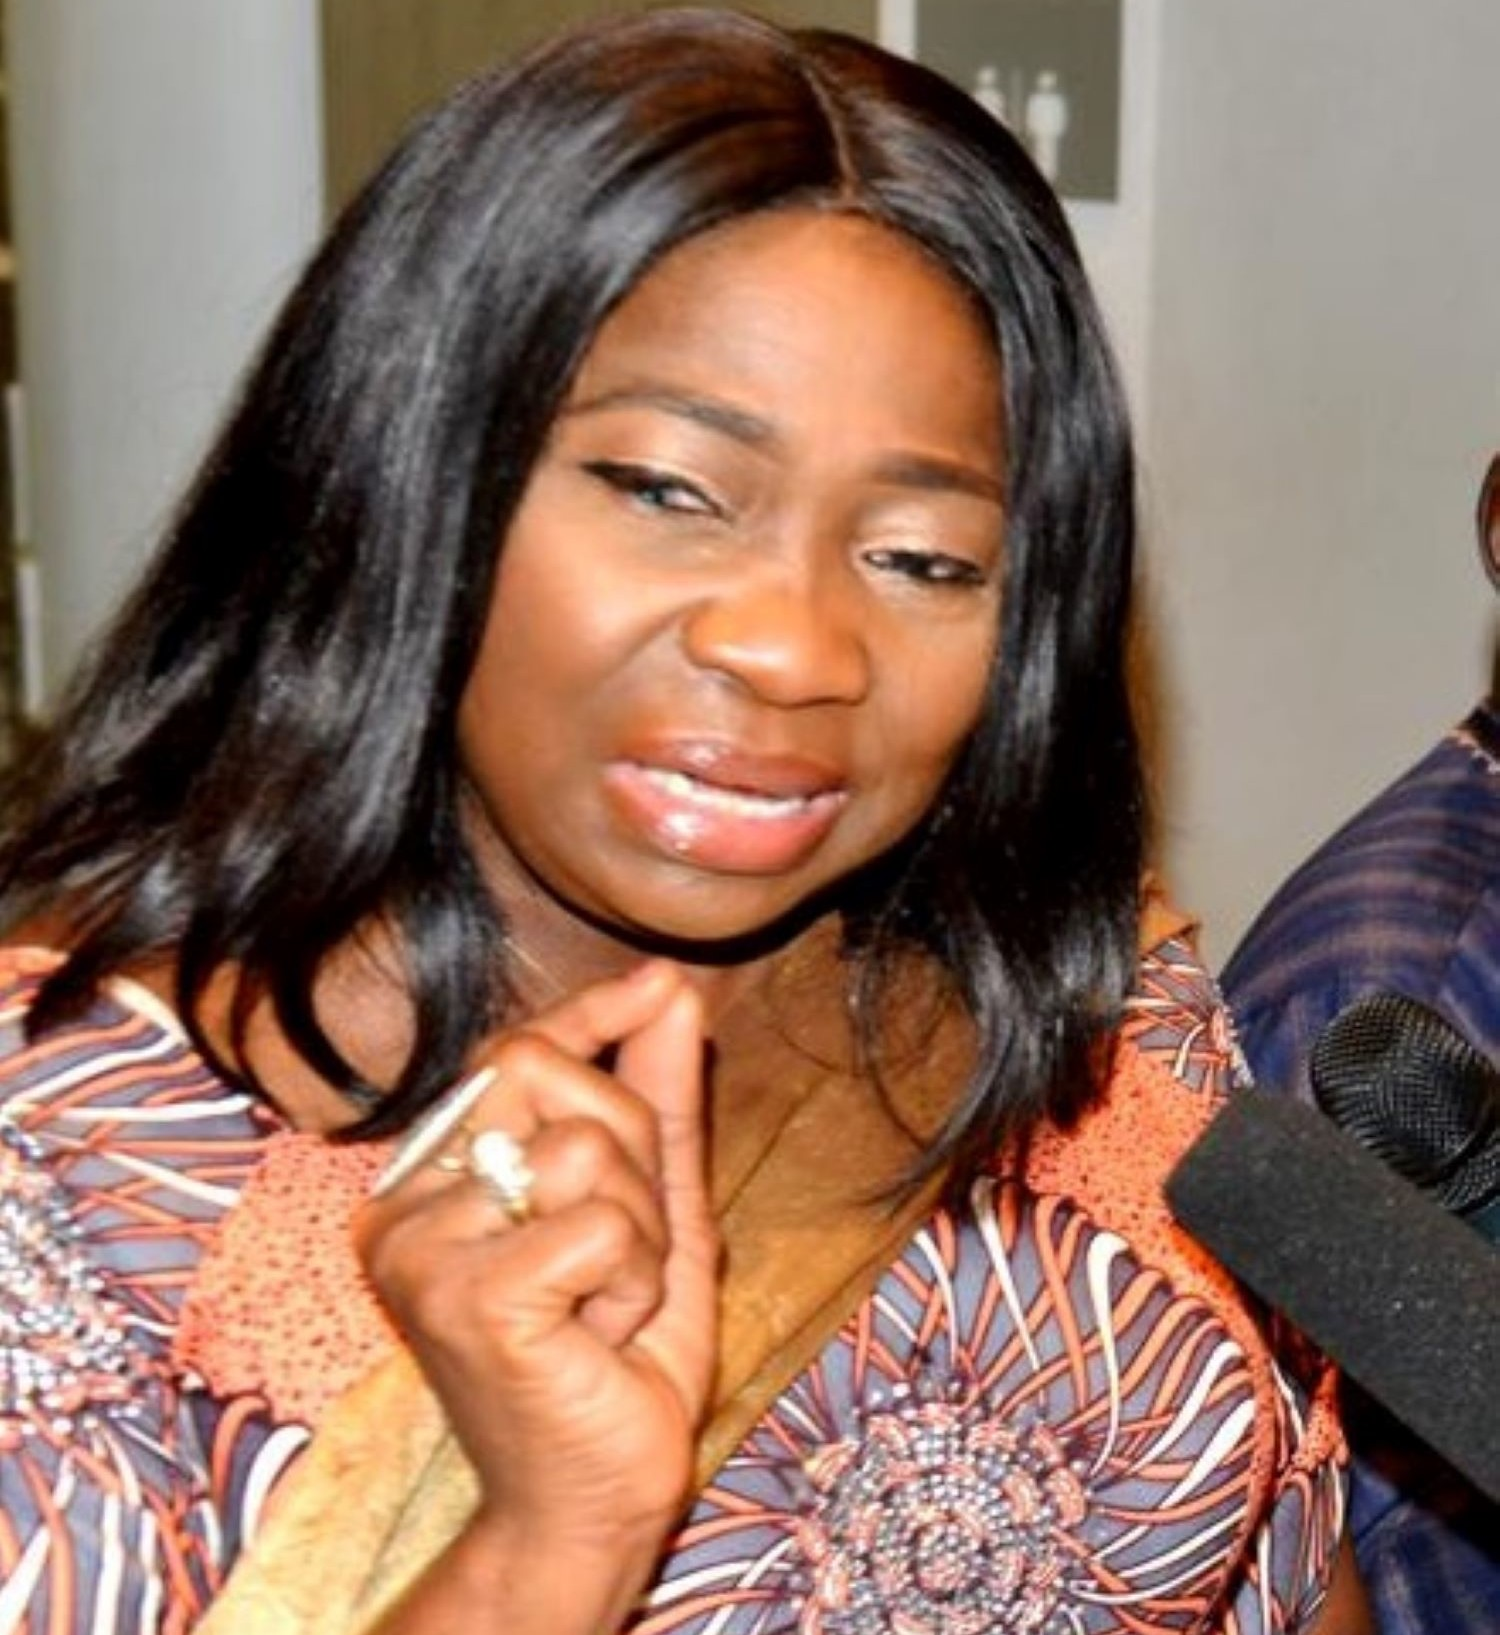 JUST IN: Don't credit any post on Katsina Boys release to my handle, Abike Dabiri warns